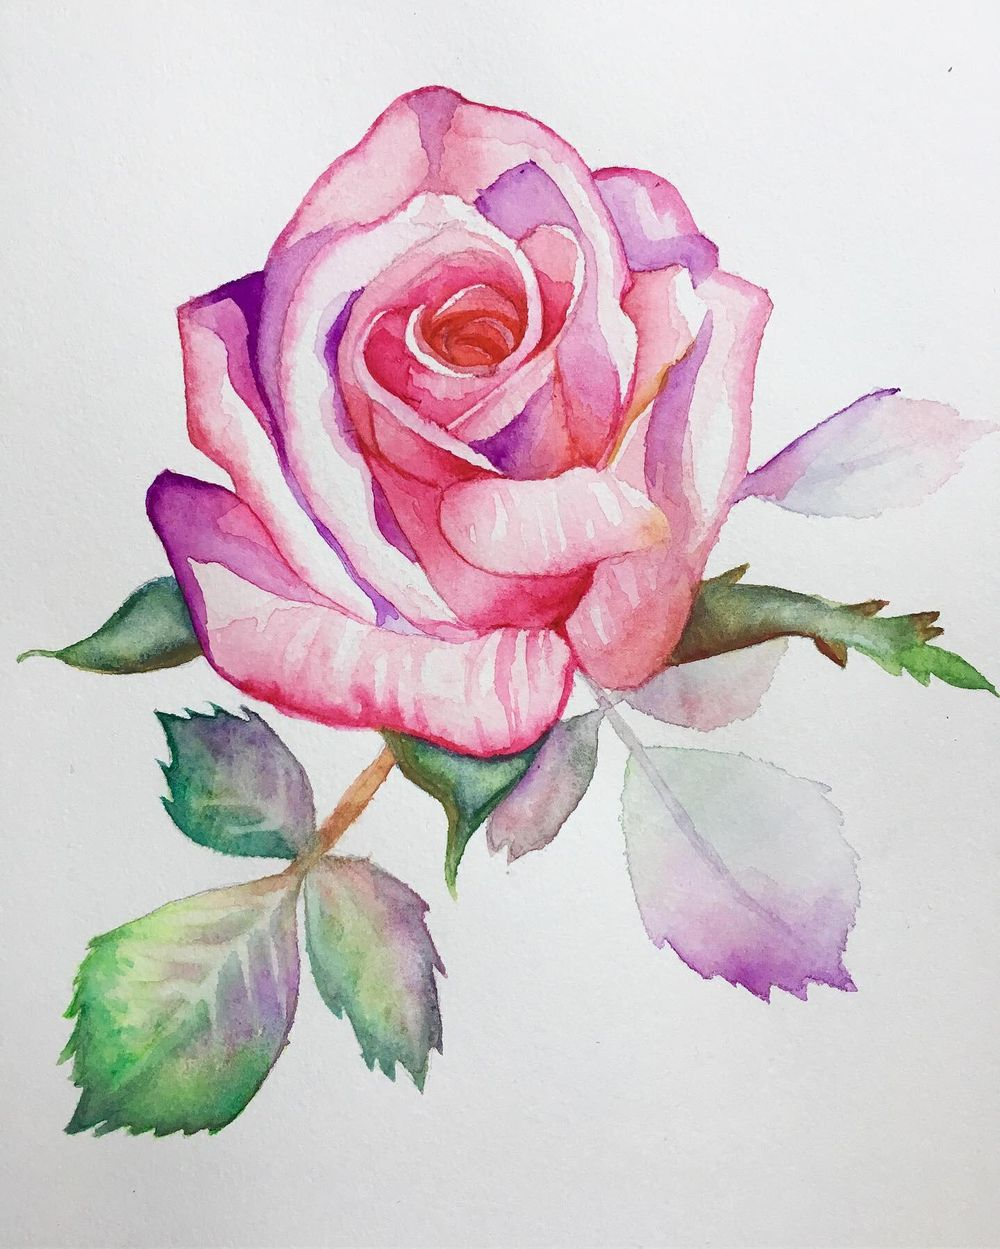 Pink rose - image 2 - student project